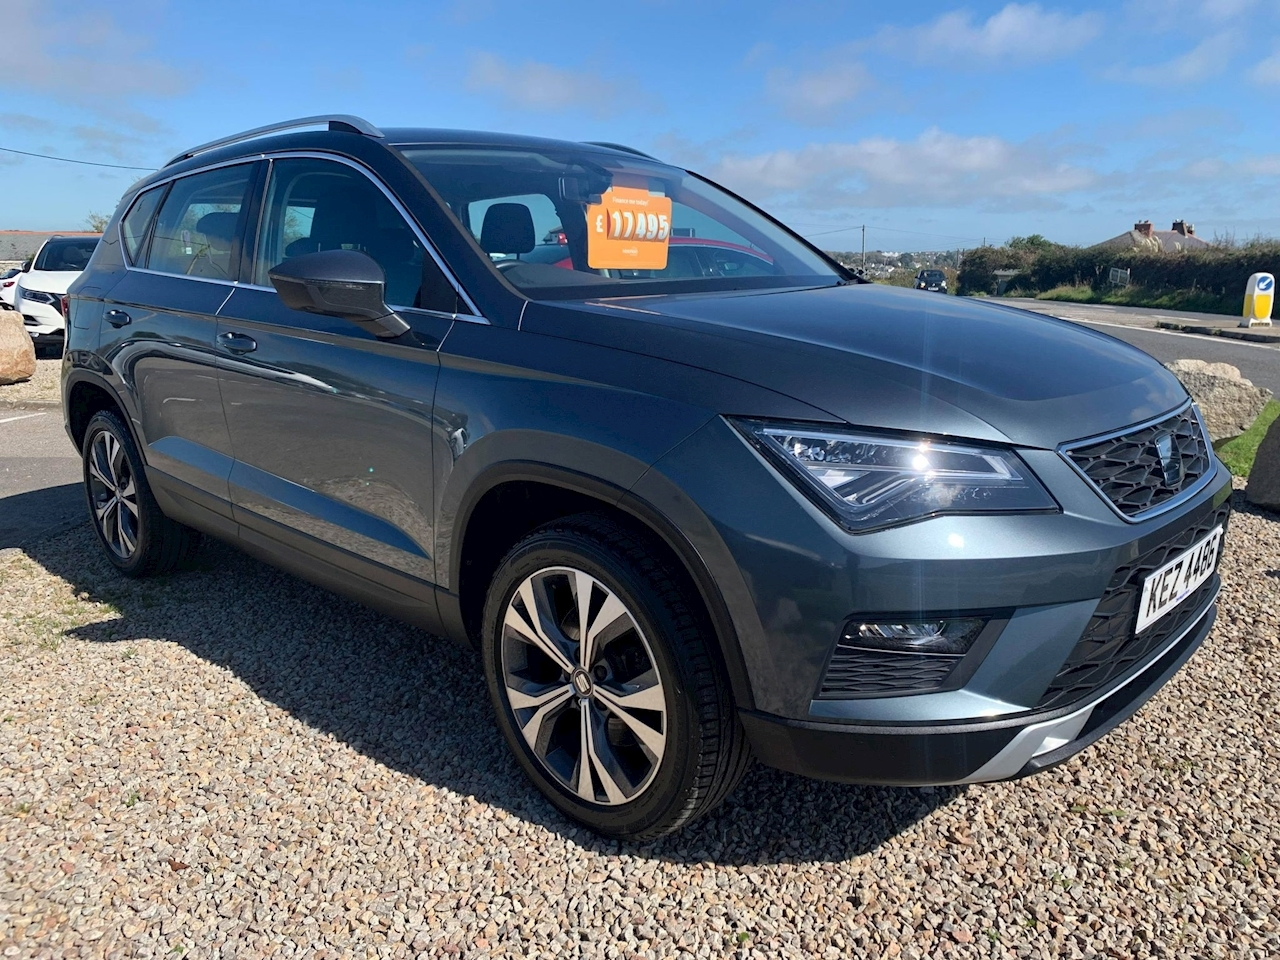 SEAT Ateca SE Technology SUV 1.4 Manual Petrol